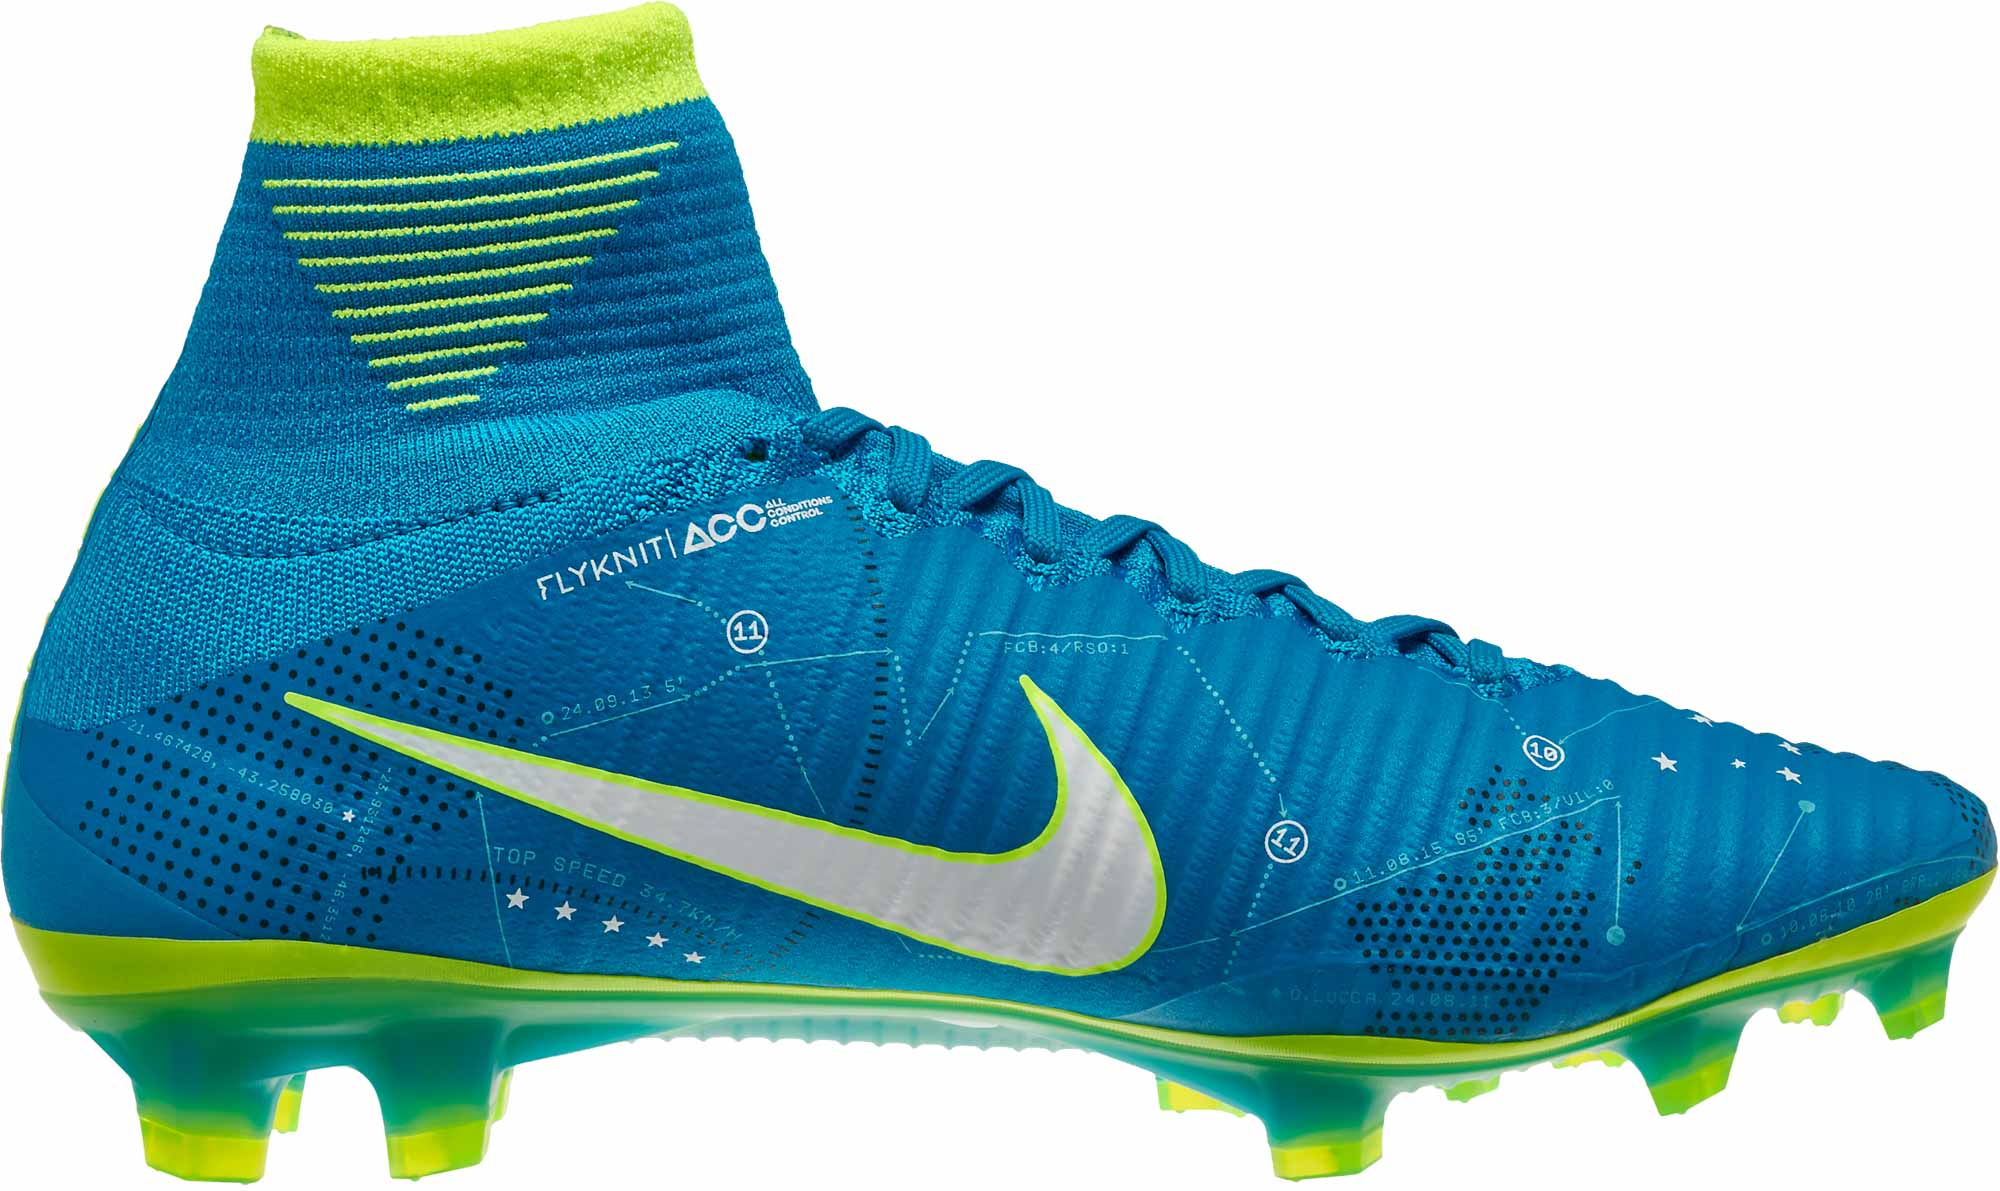 35d5d10c244 Nike Mercurial Superfly V SX FG – Neymar – Blue Orbit White